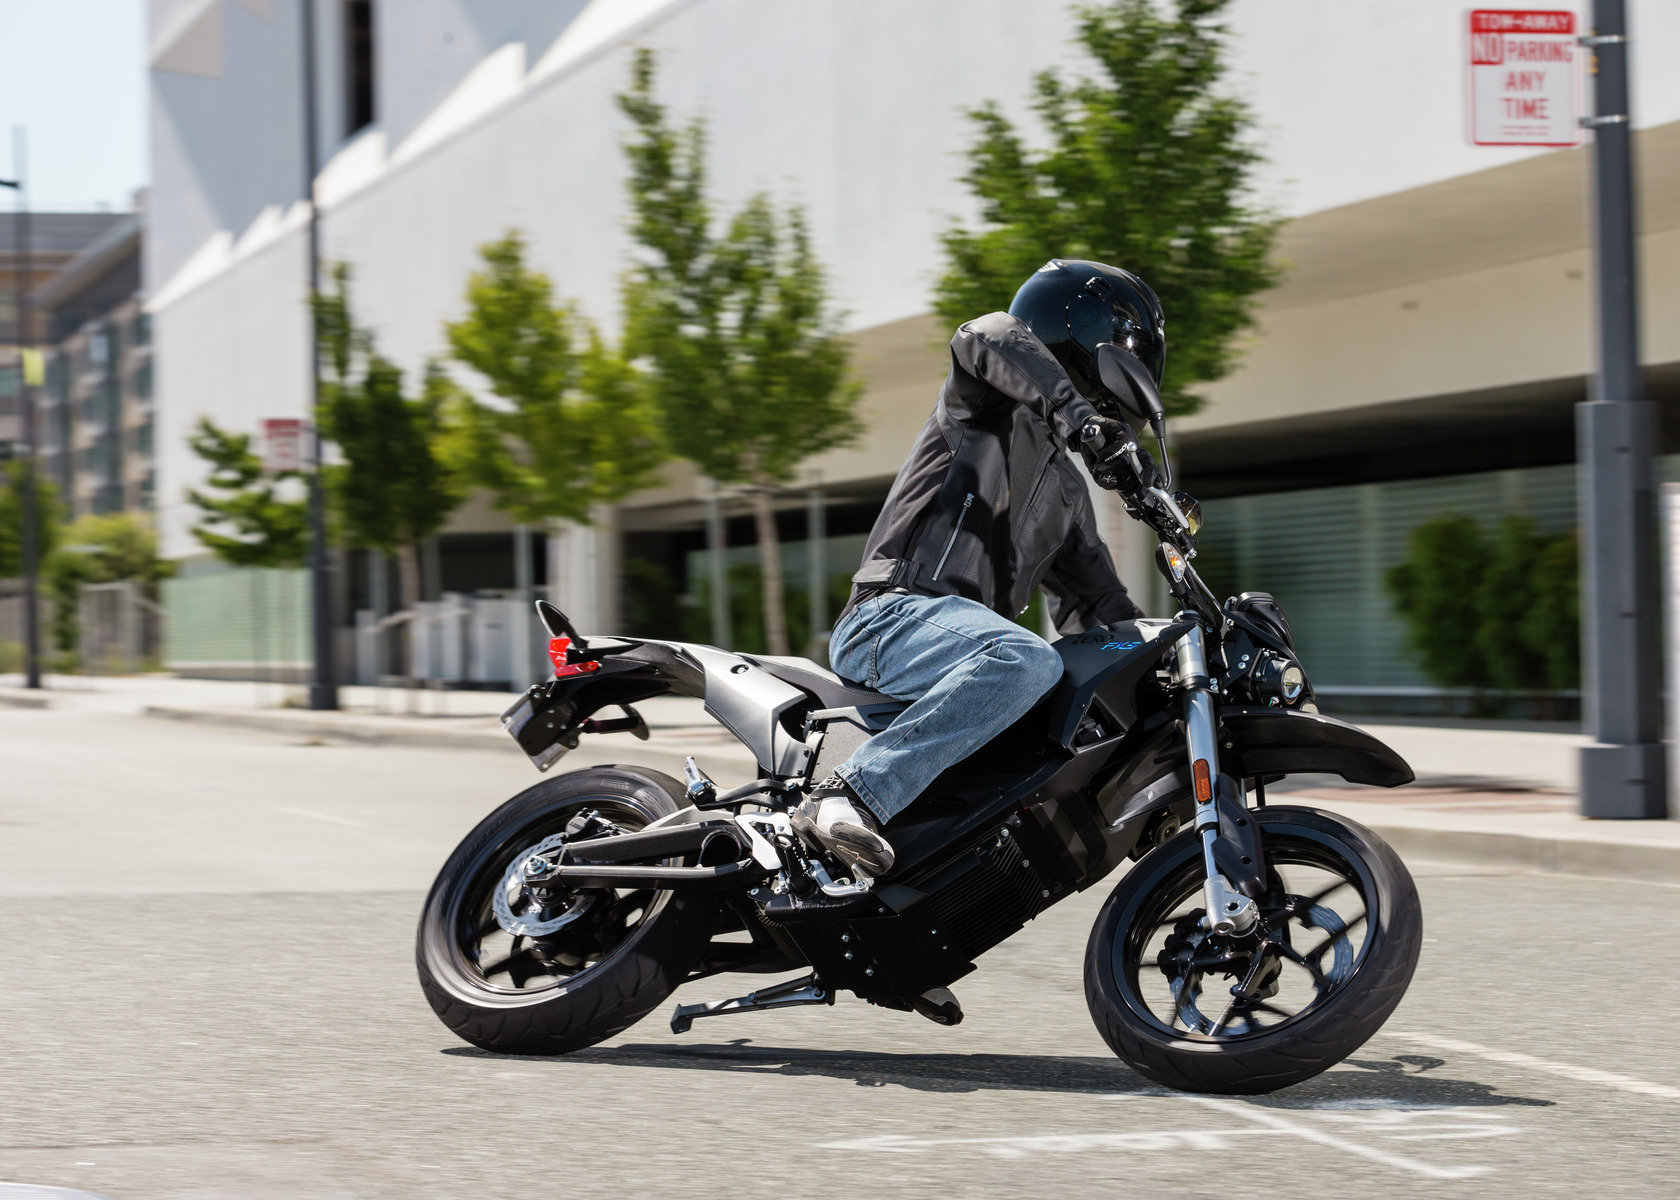 2017 Zero FXS Electric Motorcycle: